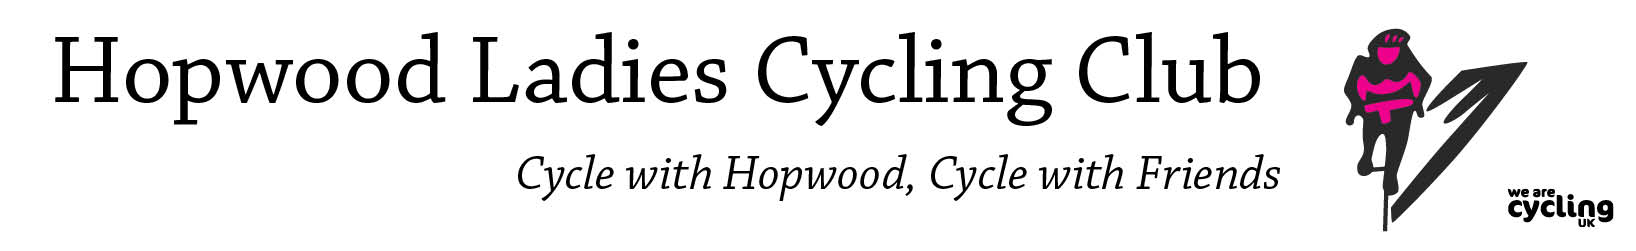 Hopwood Ladies Cycling Club